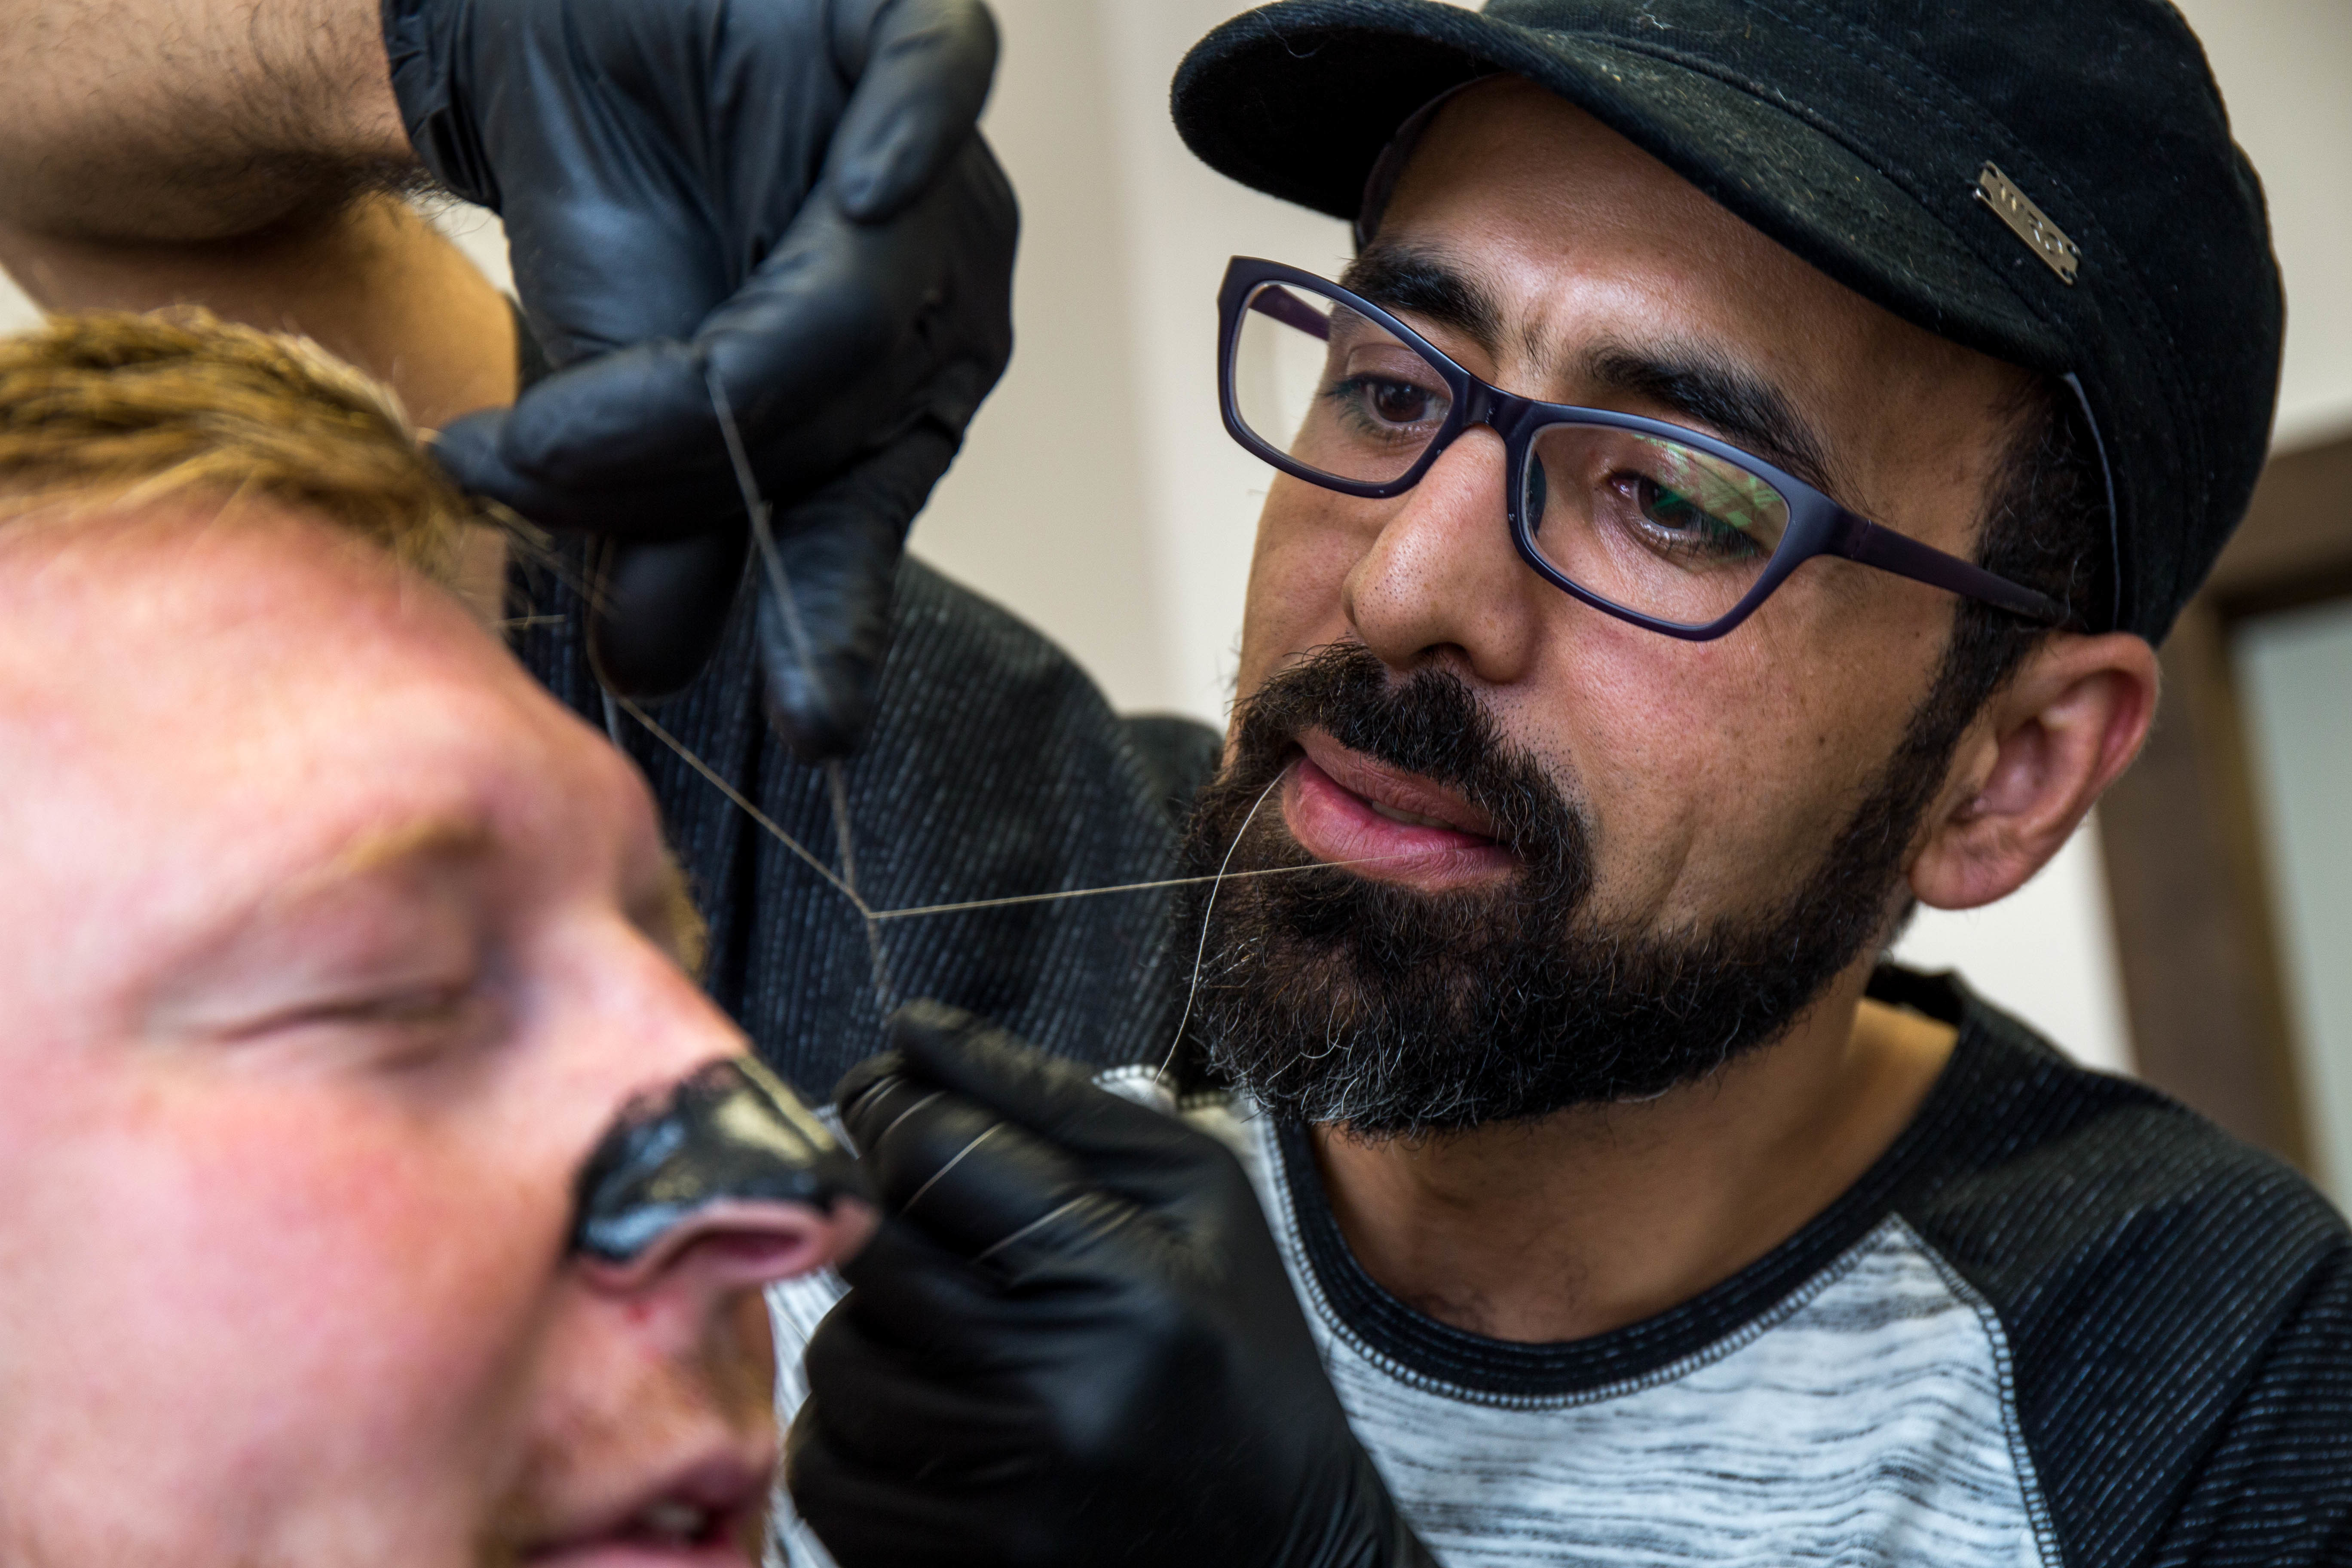 Mohamad Almaidani uses' old school' techniques, including thread and razors, to give his customers a polished look. (Lindsay Bird/CBC)